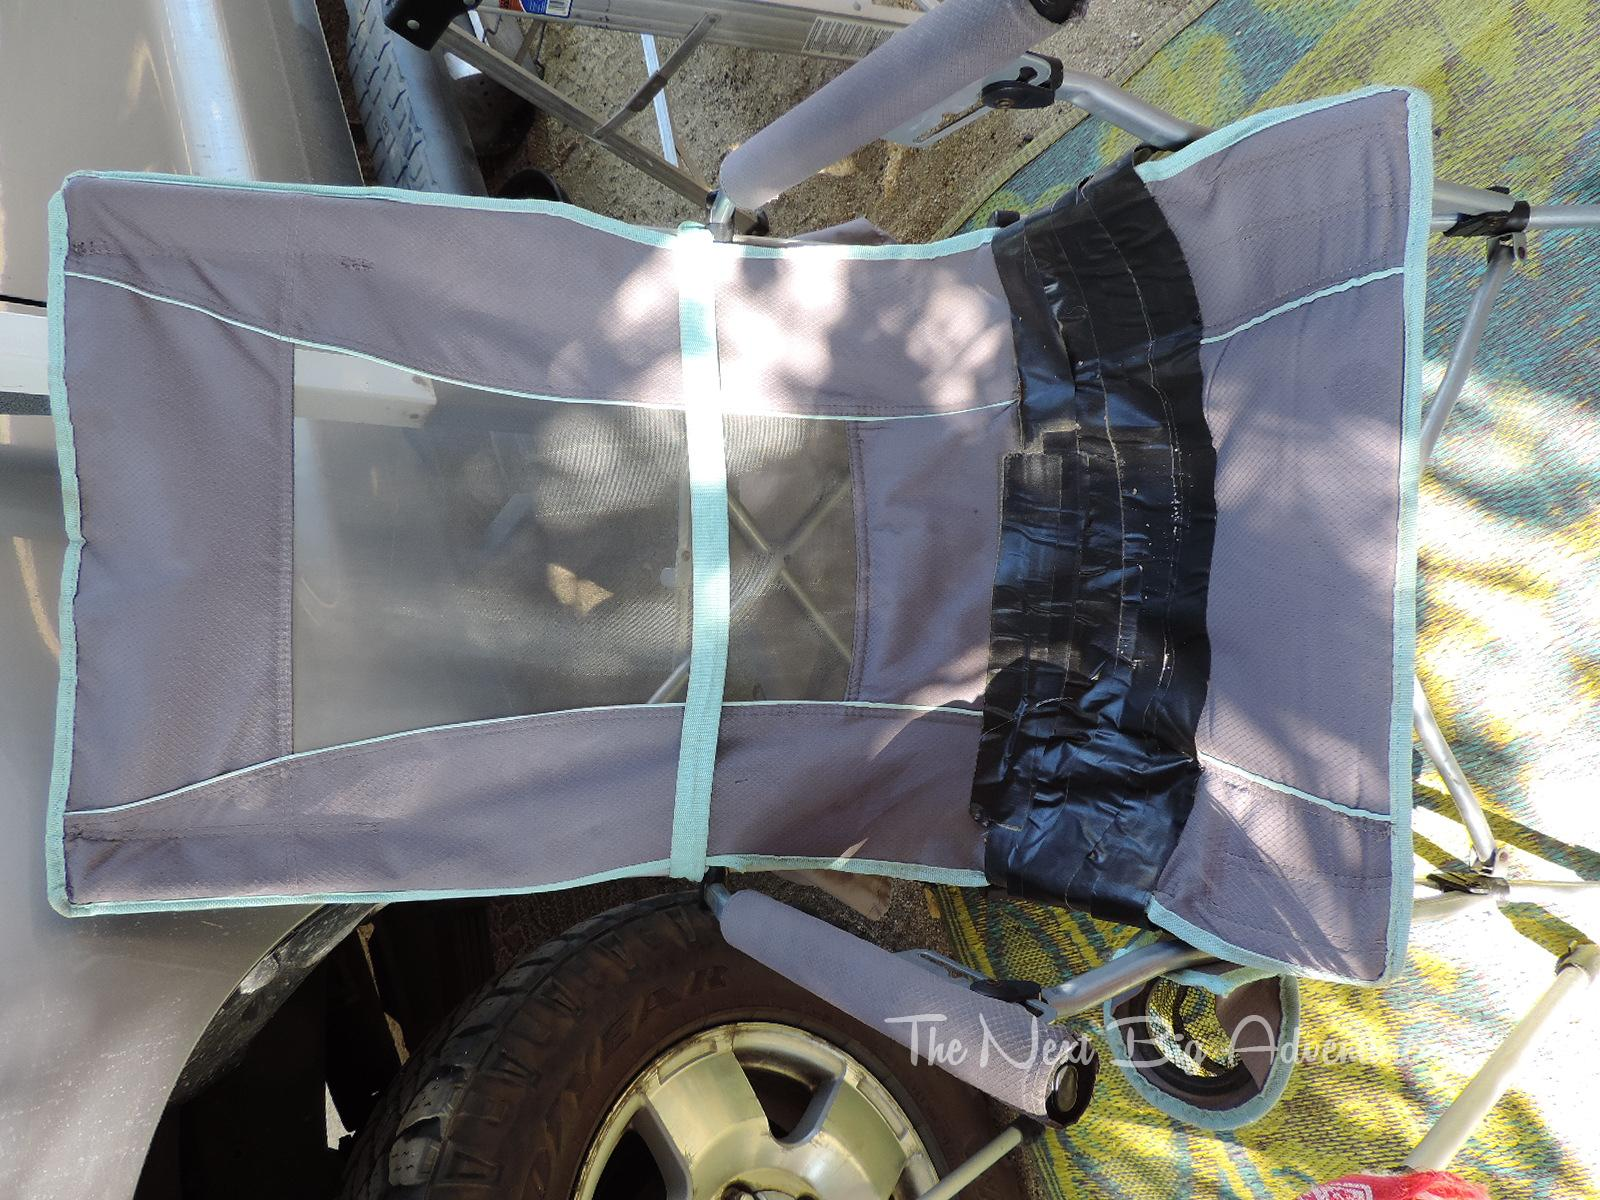 rei camp x chair glider rocking cushion covers a tale of two chairs gear review the next